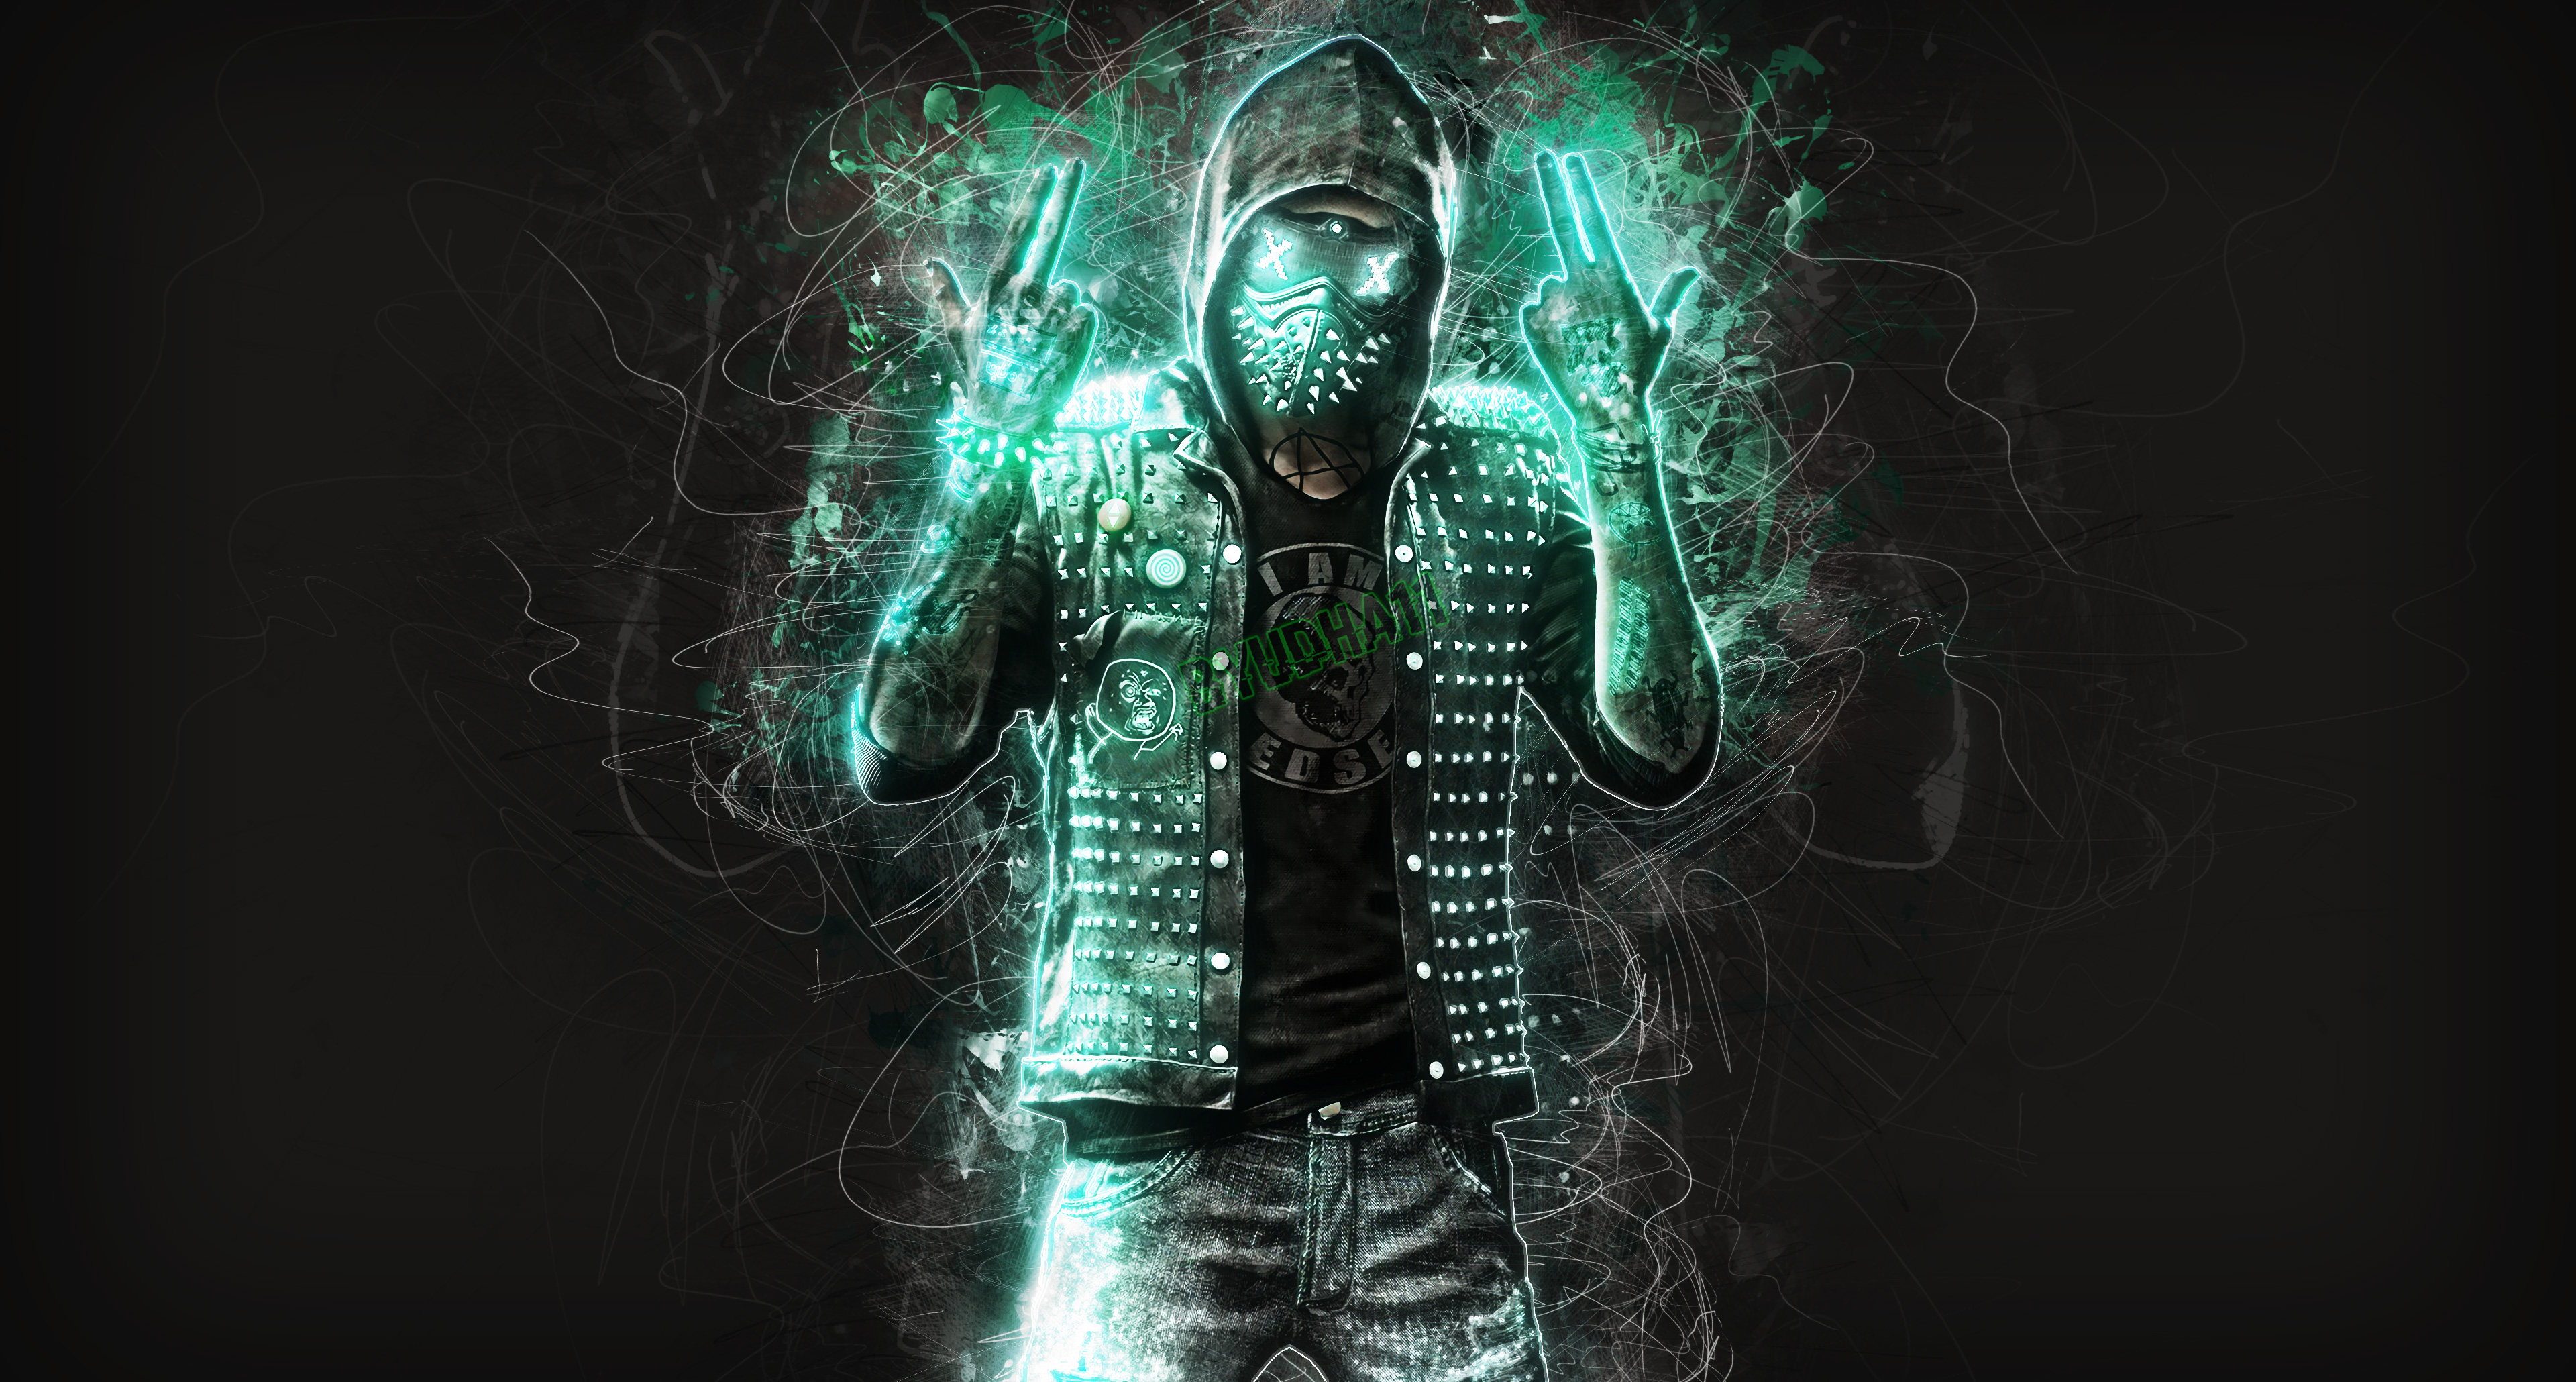 Watch Dogs  Wrench Wallpaper Computer